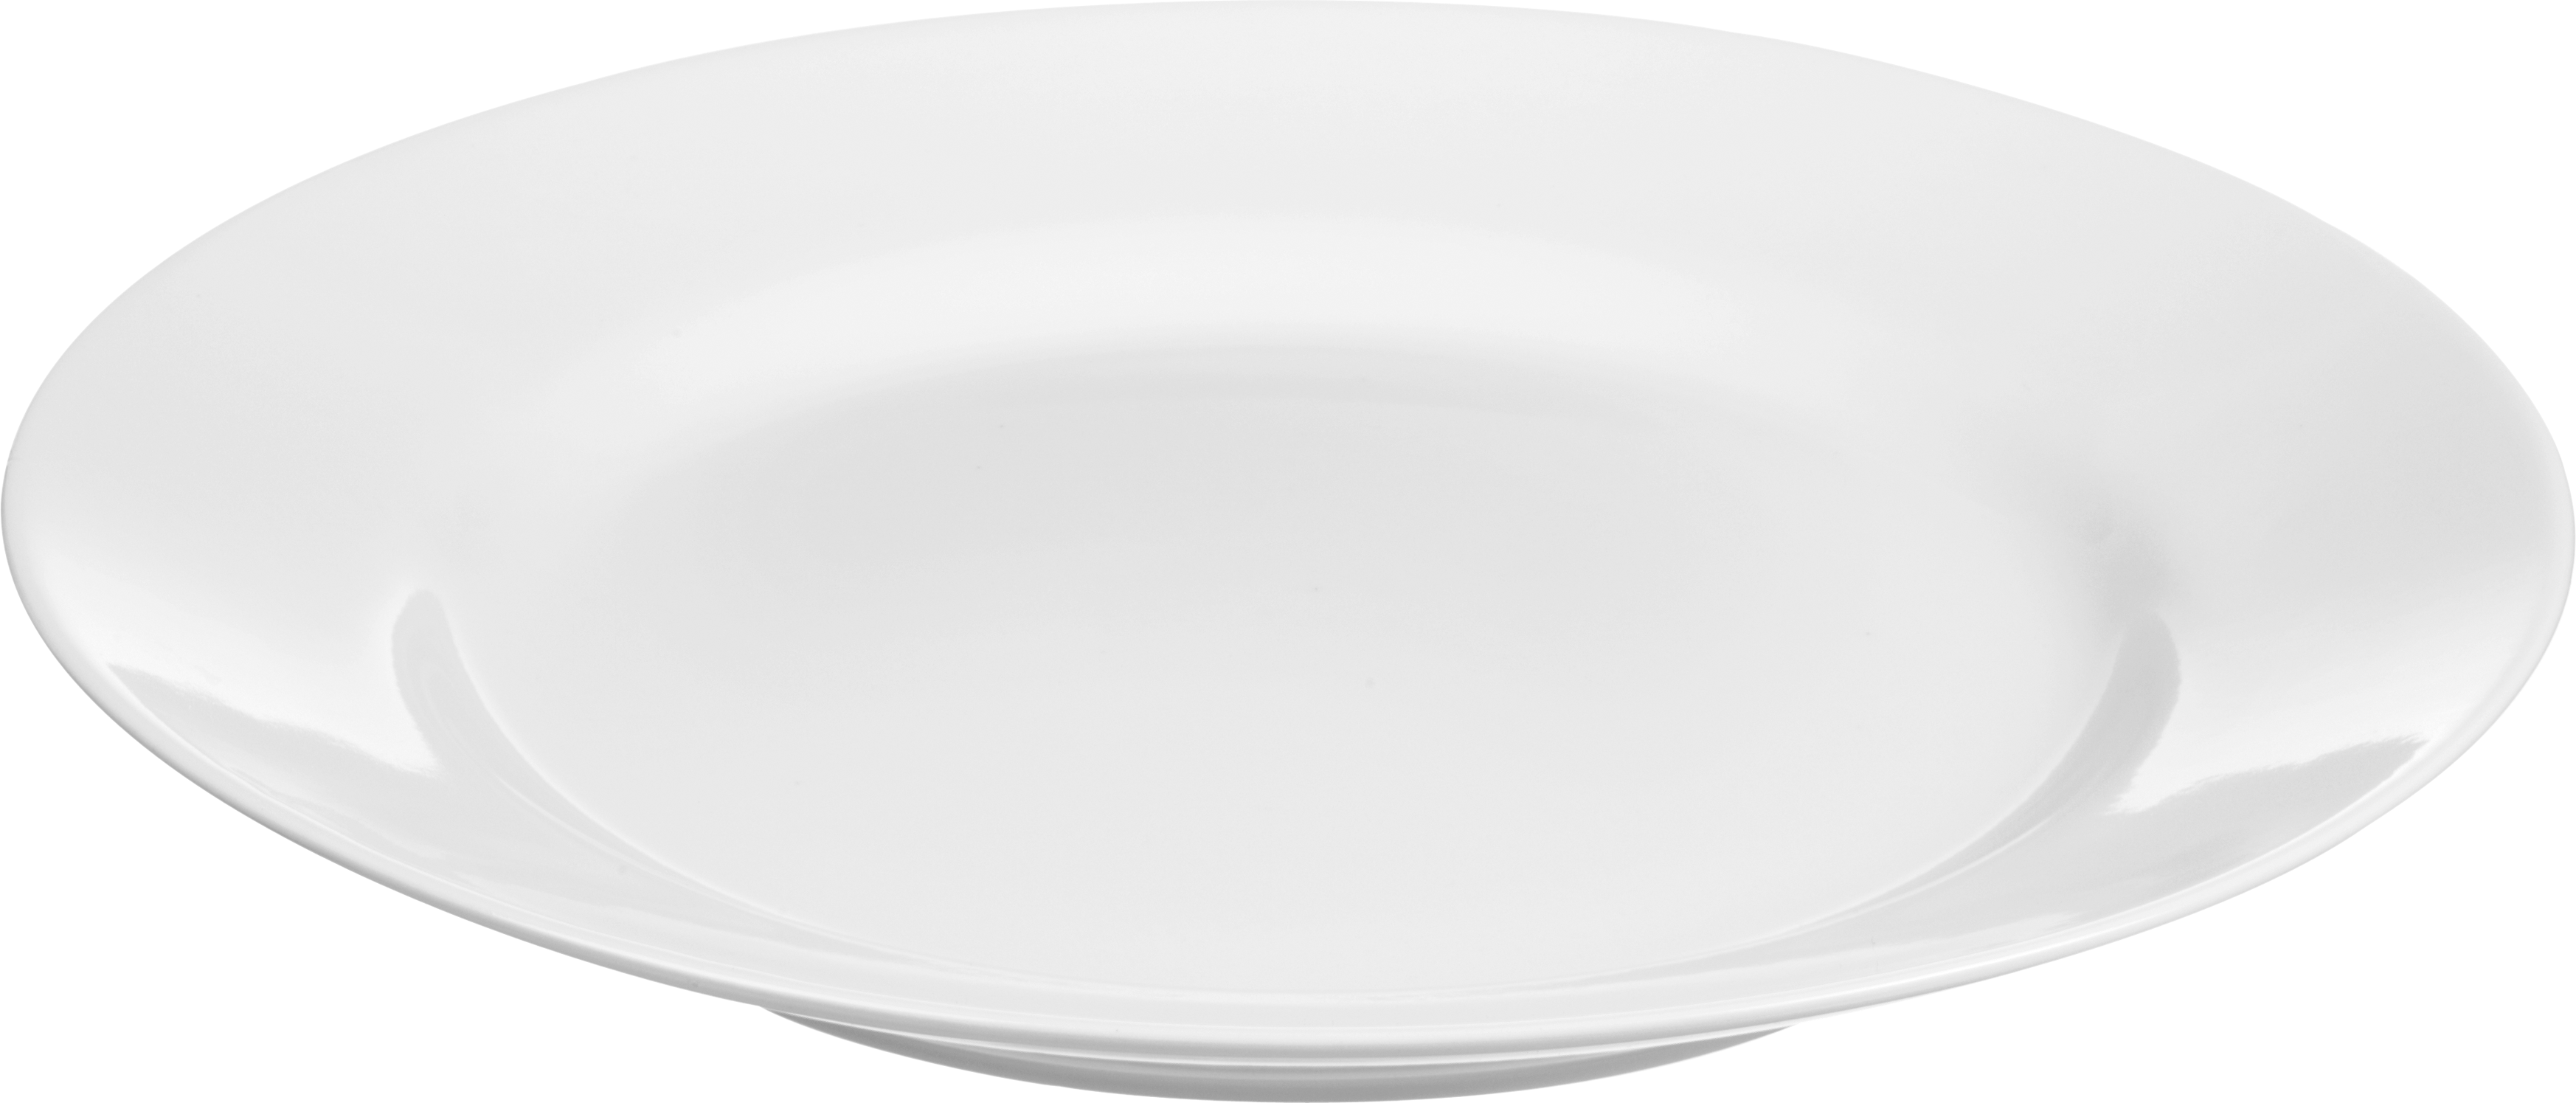 Viber Plate Png - Plate PNG Clipart, Dinner Plate, Empty Plate PNG Images - Free ...